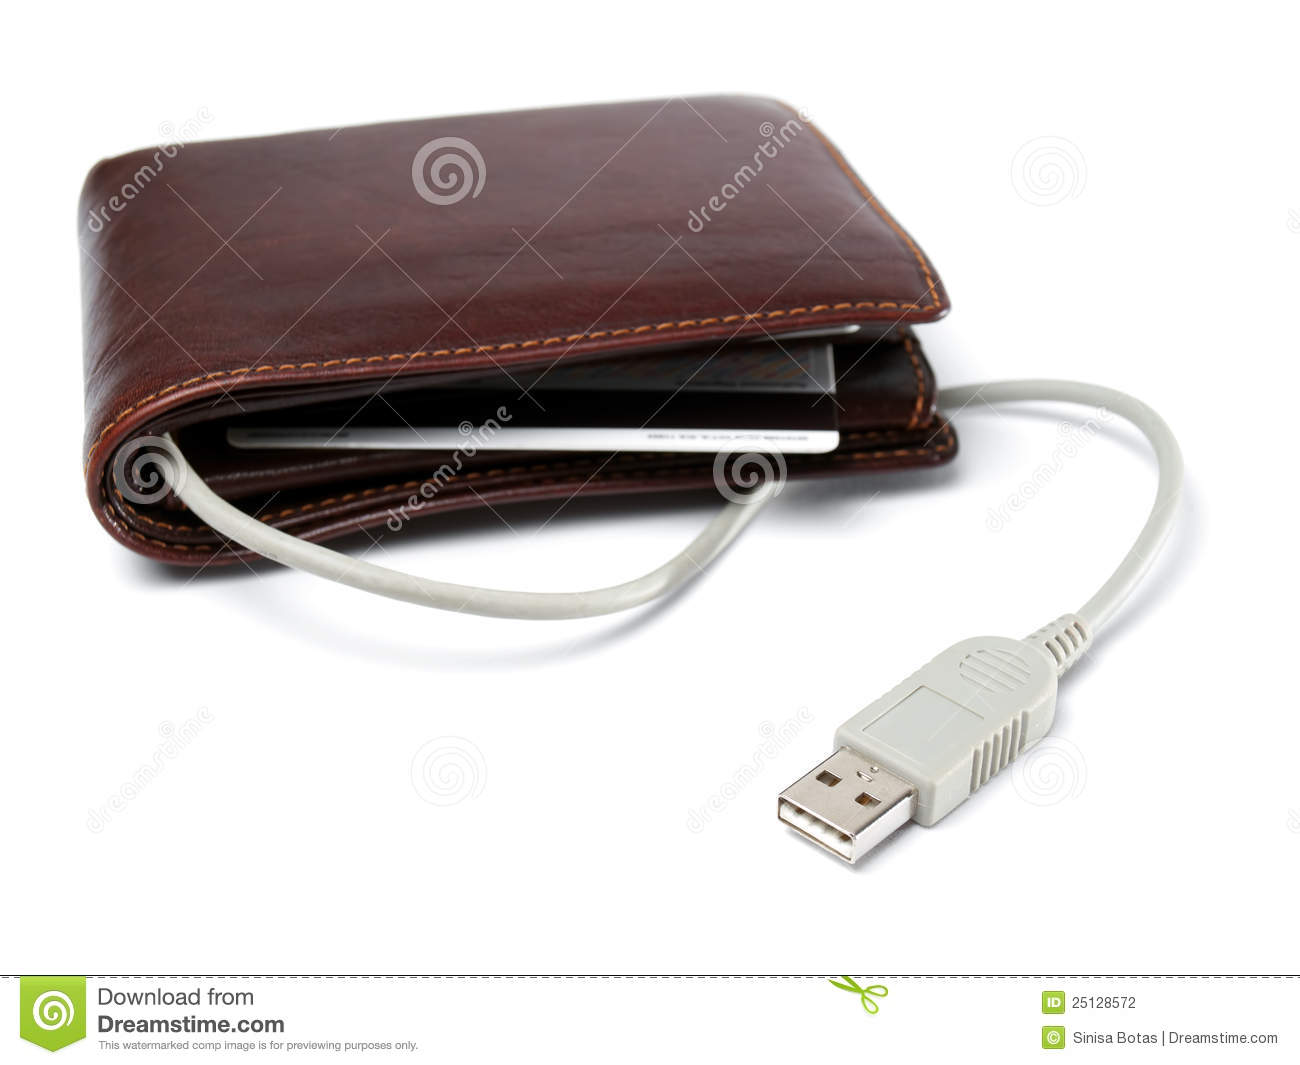 Electronic Wallet Stock Photography - Image: 25128572